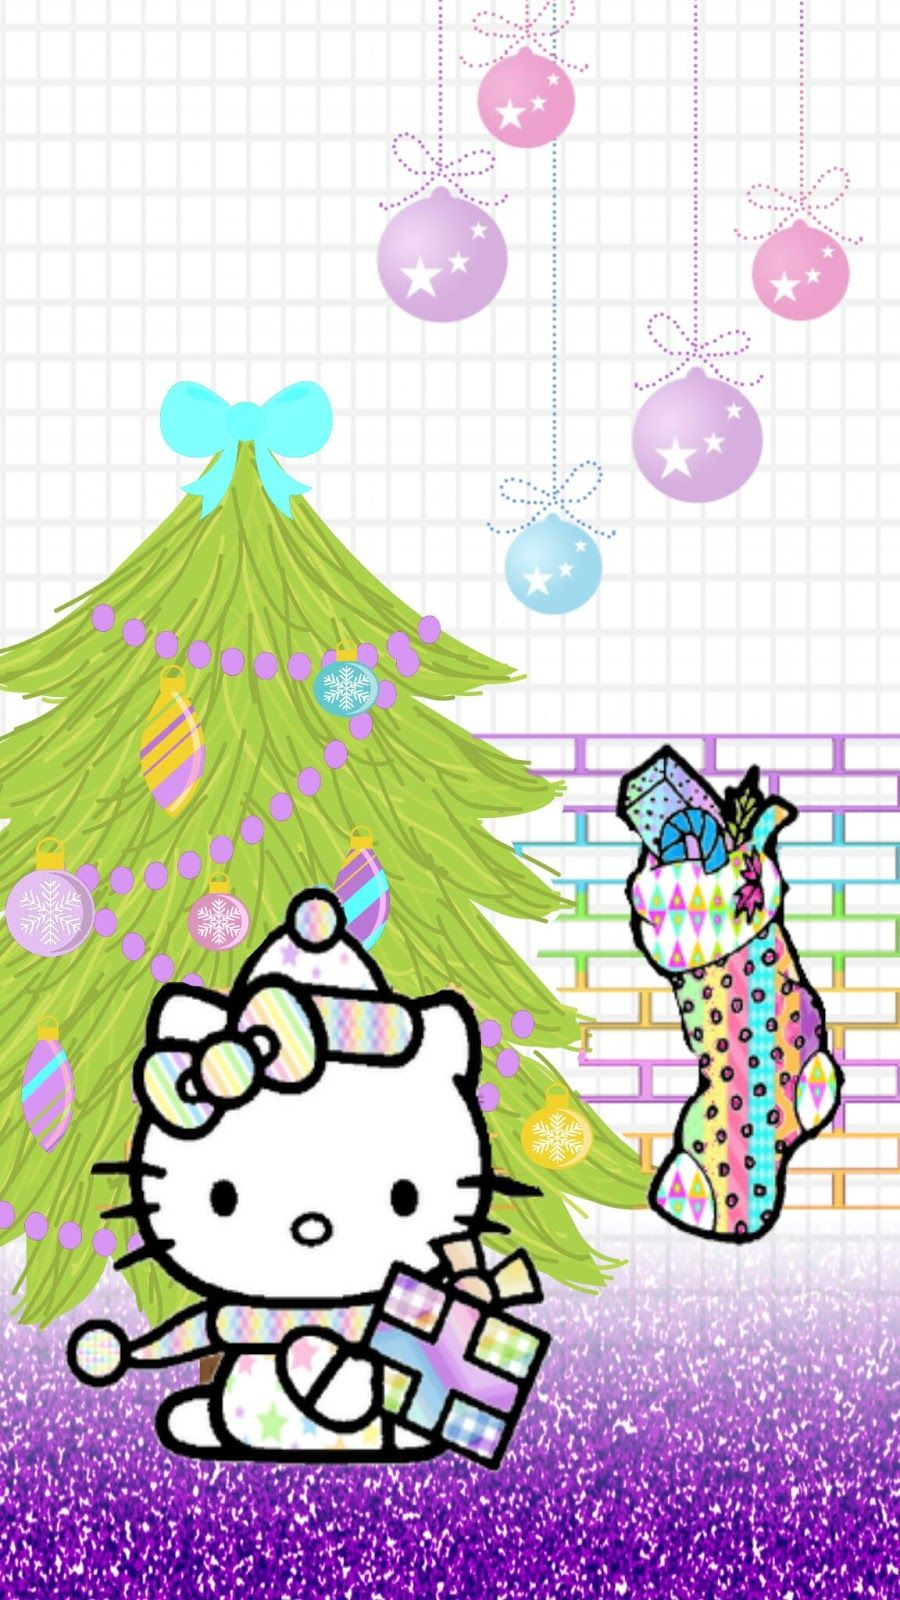 Blingin android christmas tjn iphone walls christmas blingin android christmas tjn xmas wallpaperhello kitty voltagebd Image collections